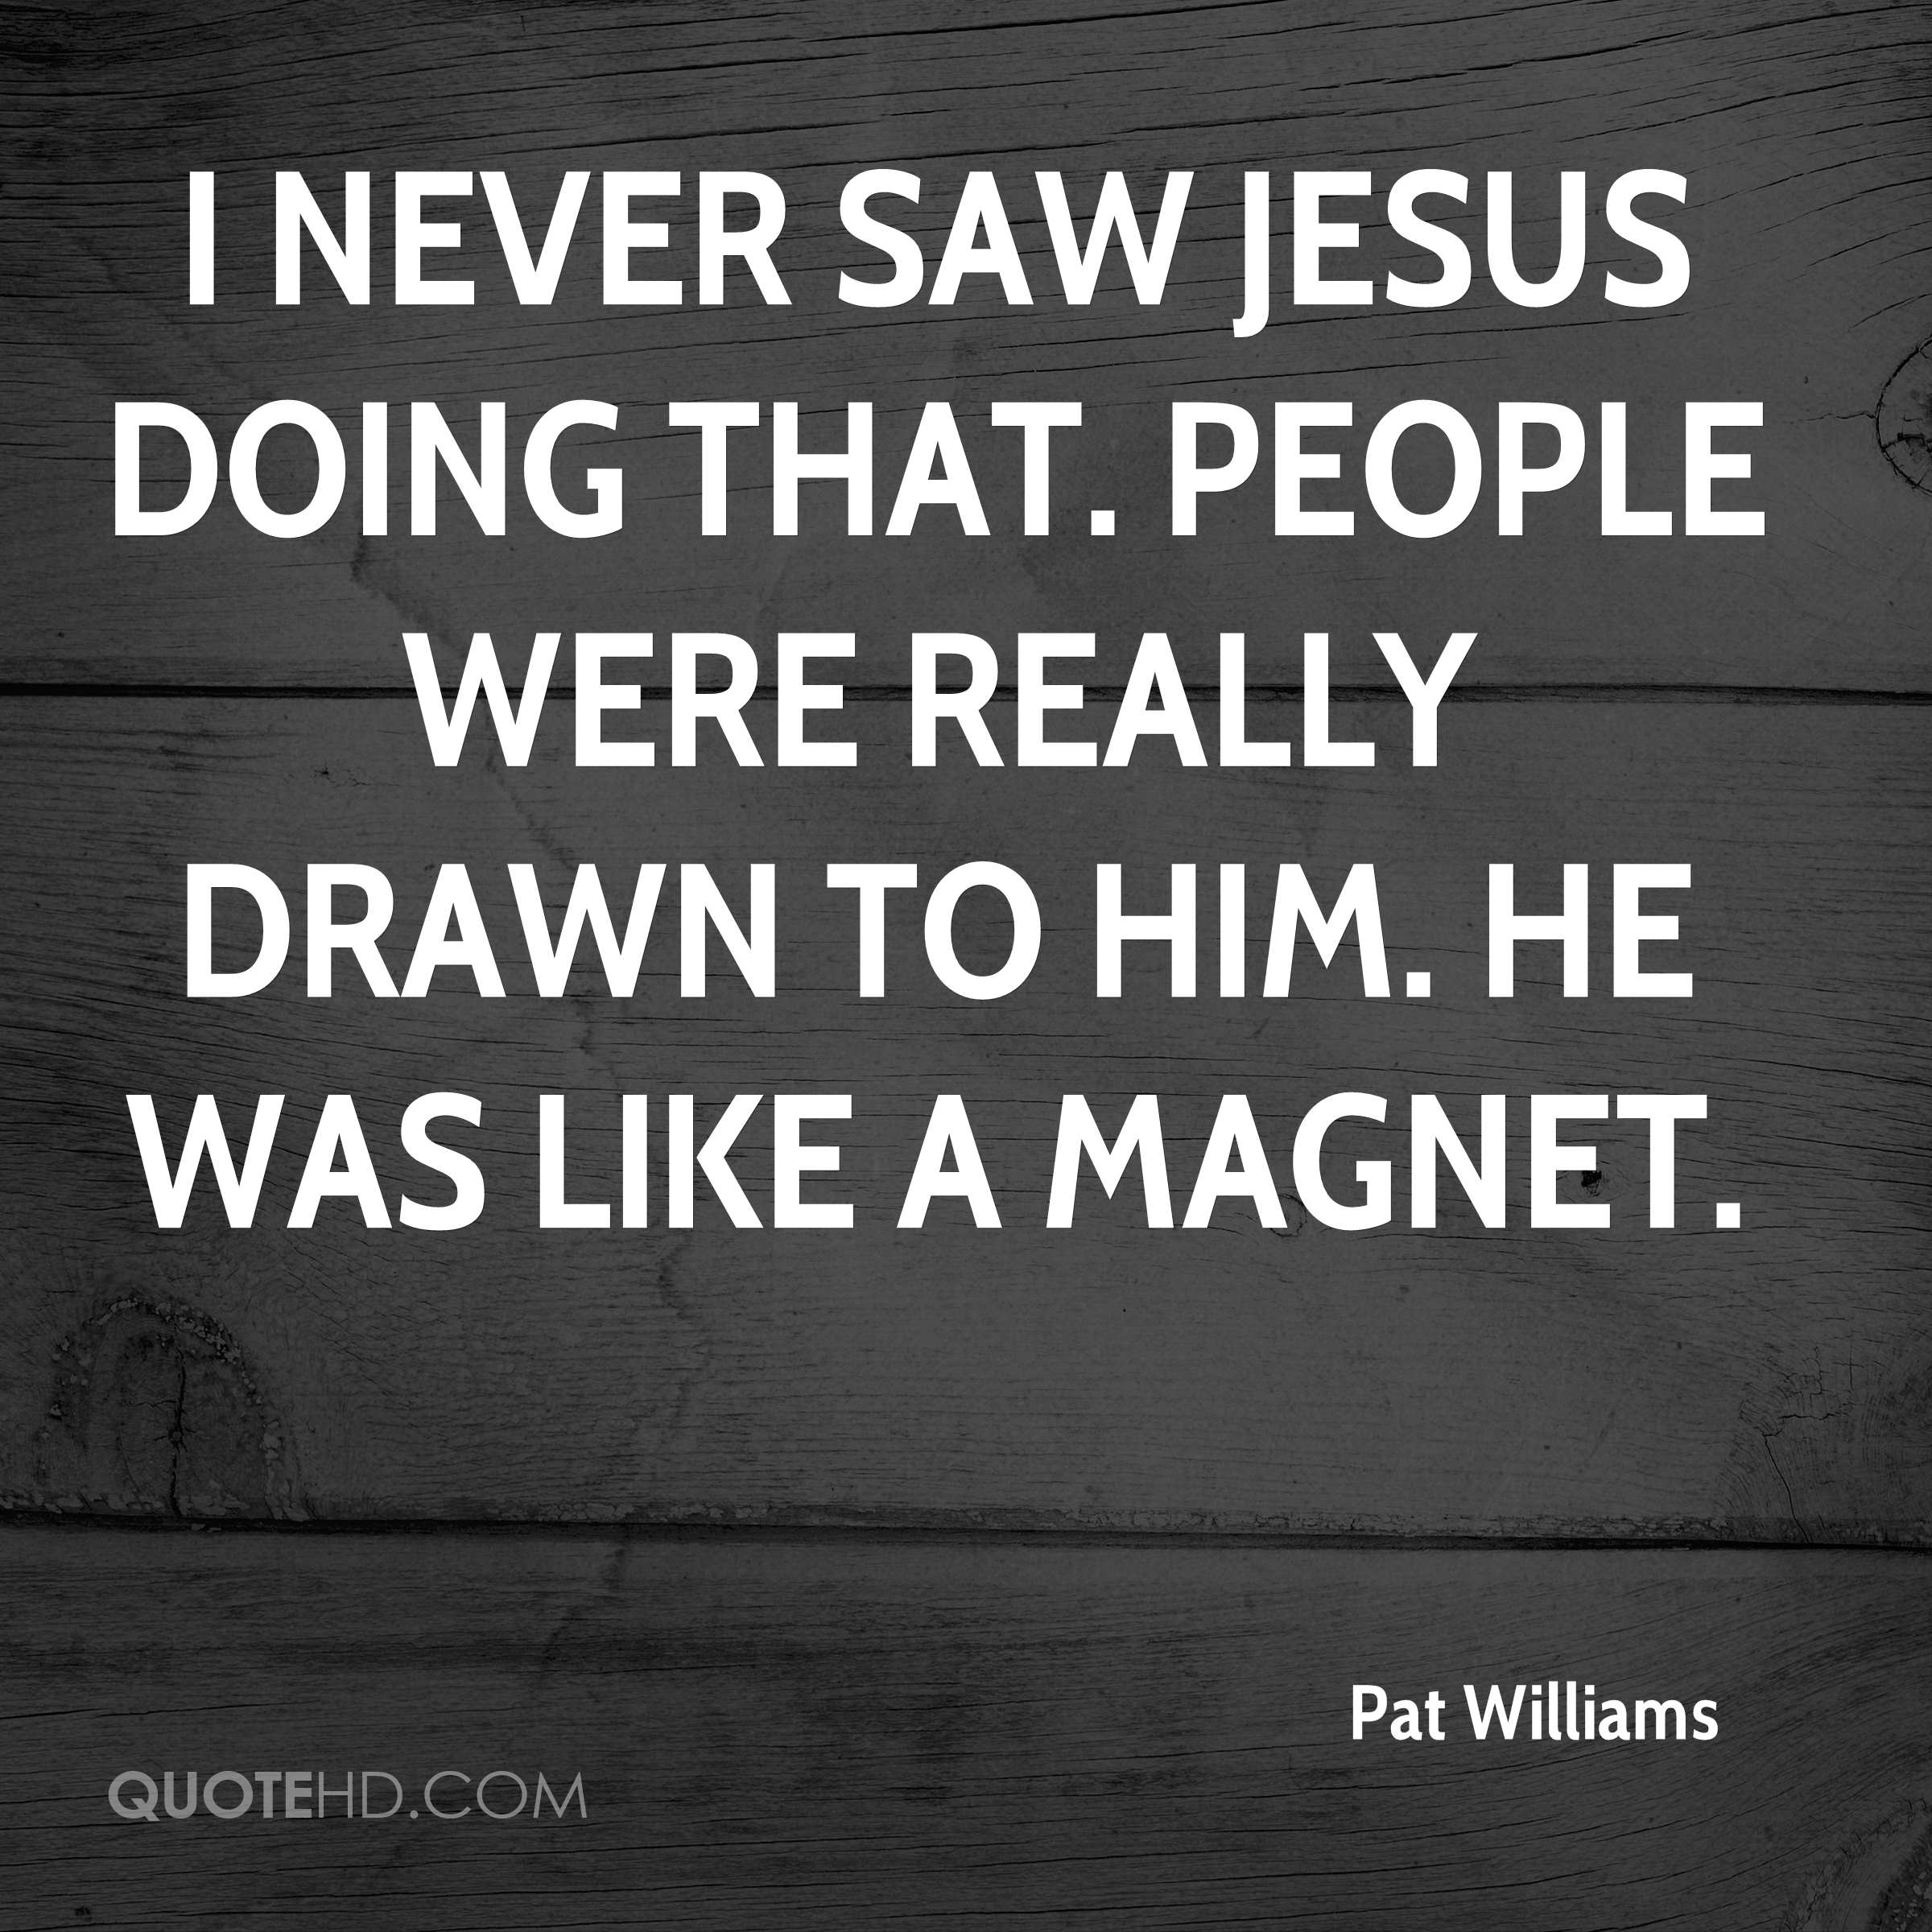 I never saw Jesus doing that. People were really drawn to Him. He was like a magnet.